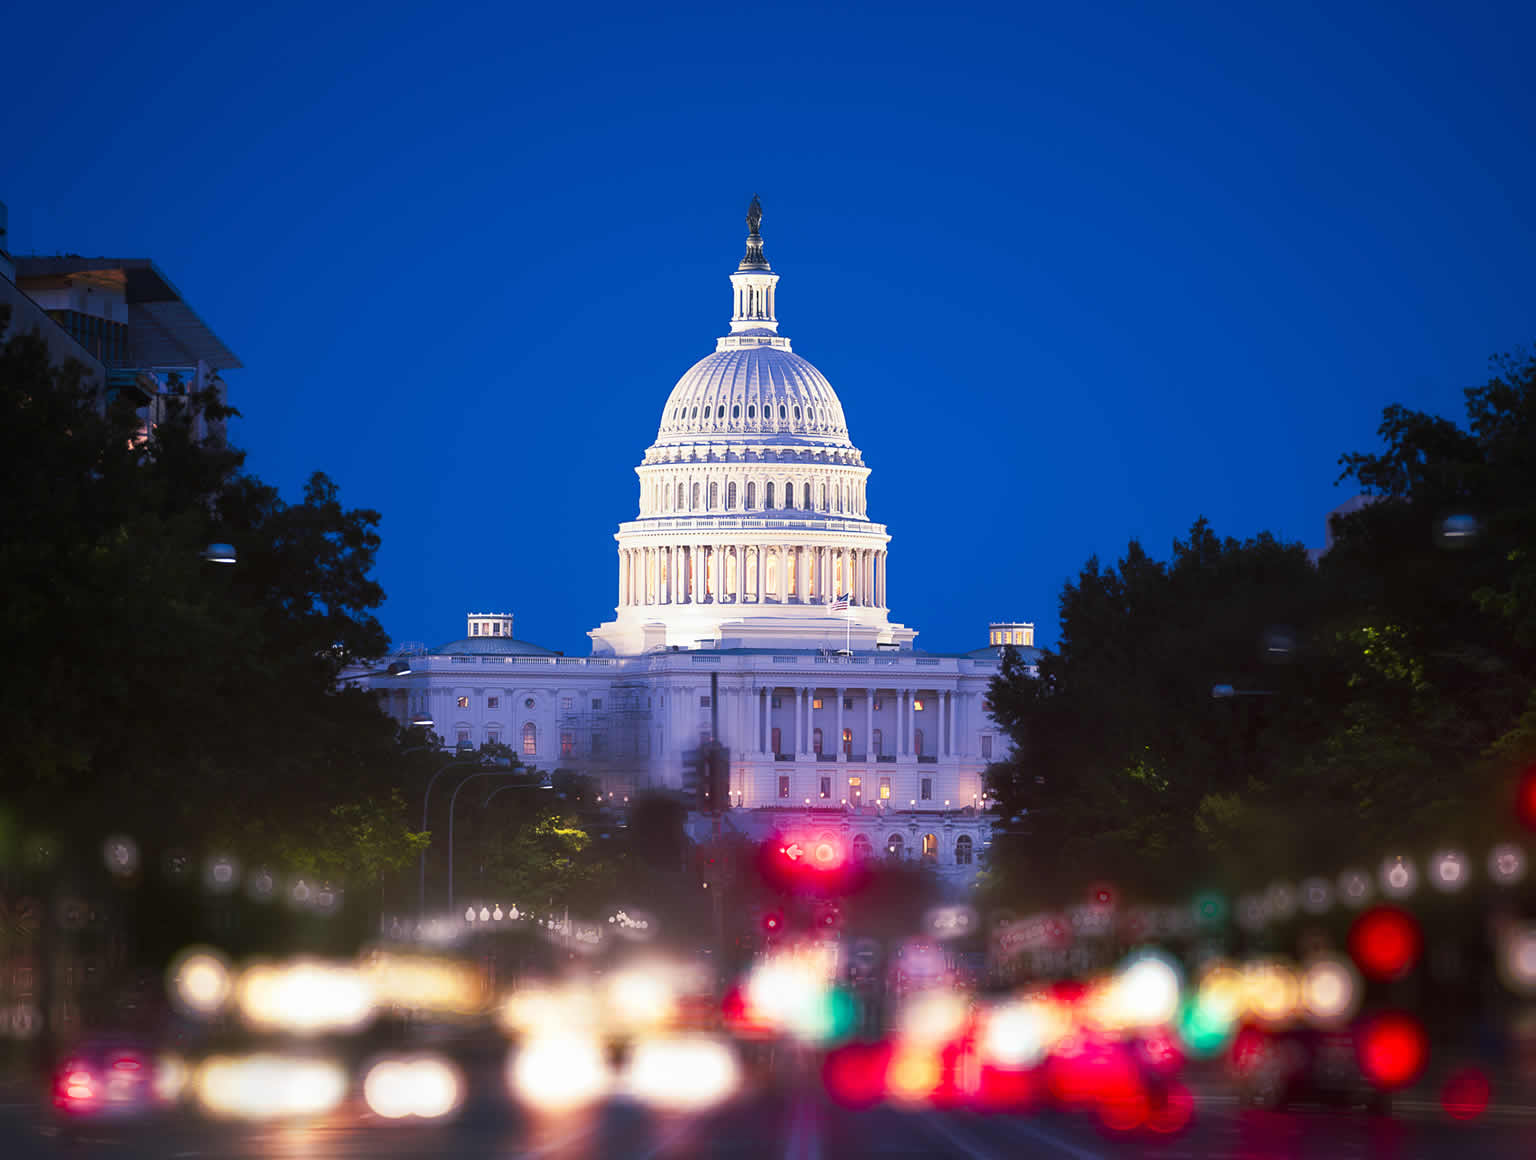 The Whitehouse lit up at night, photographed from a distance, showing tall trees on either side and blurred lights